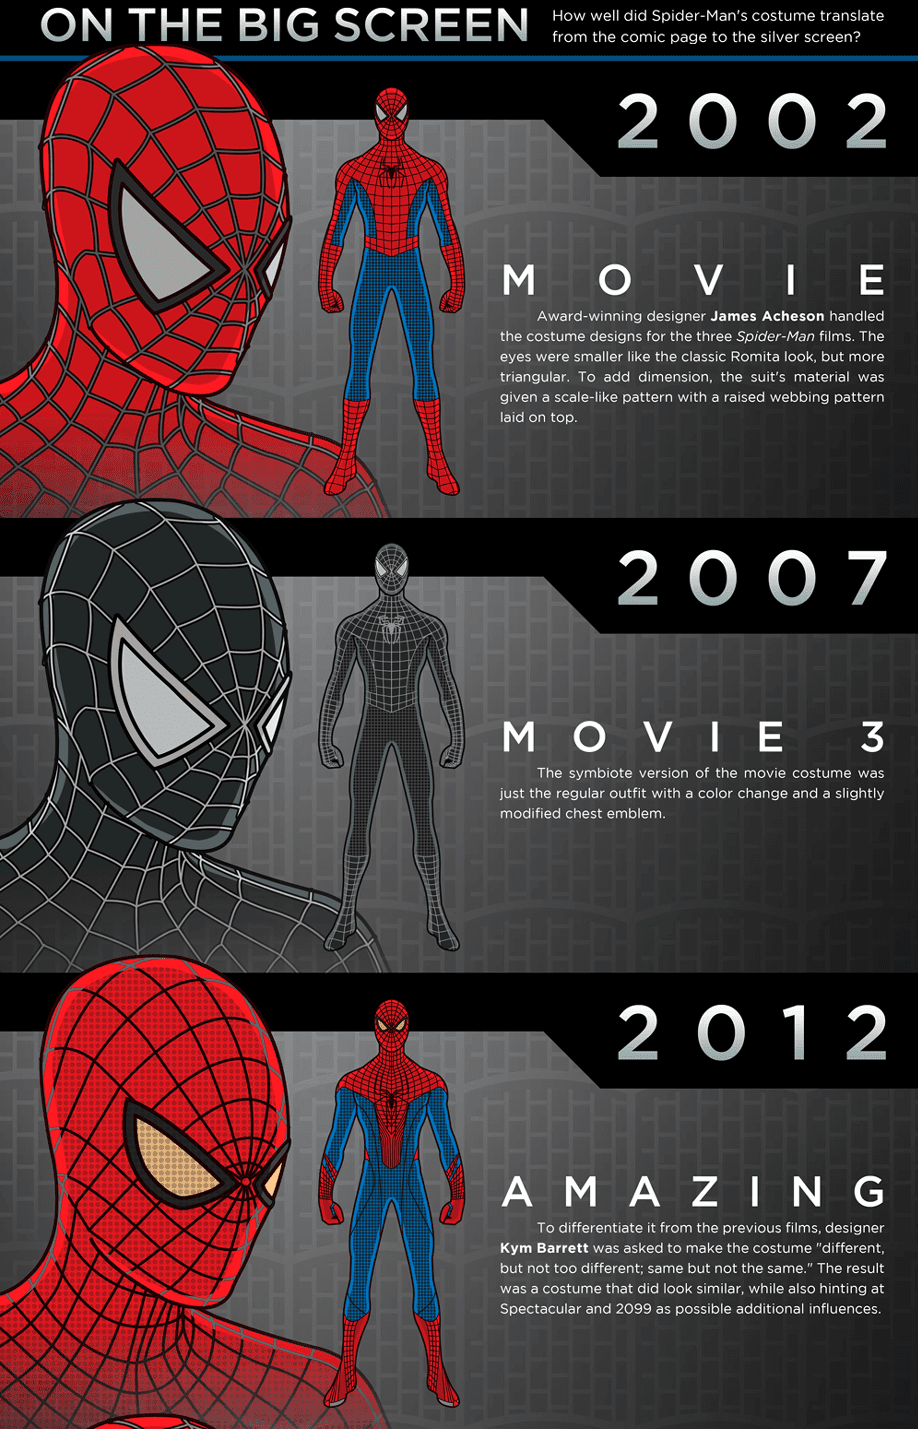 toyhaven evolution of spiderman costume from 1962 to